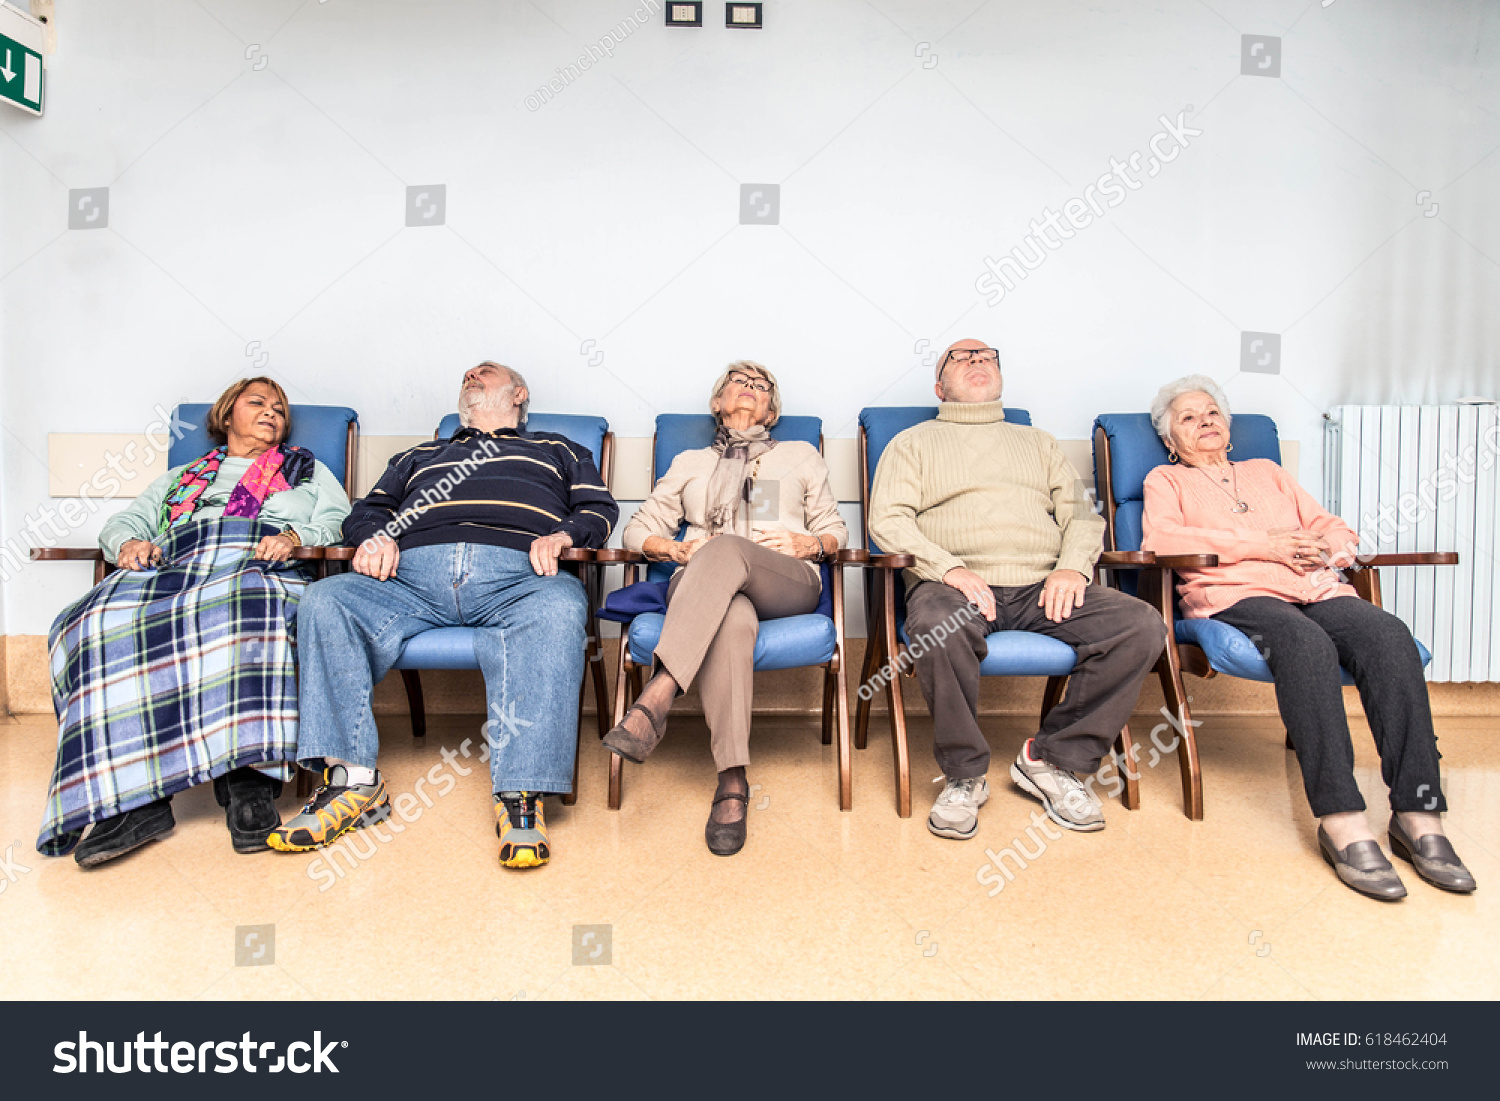 the importance of leisure activities on the old residents of the nursing home Tips on visiting friends and relatives in nursing homes did you watch old movies visits outside the nursing home many residents are able to leave the.